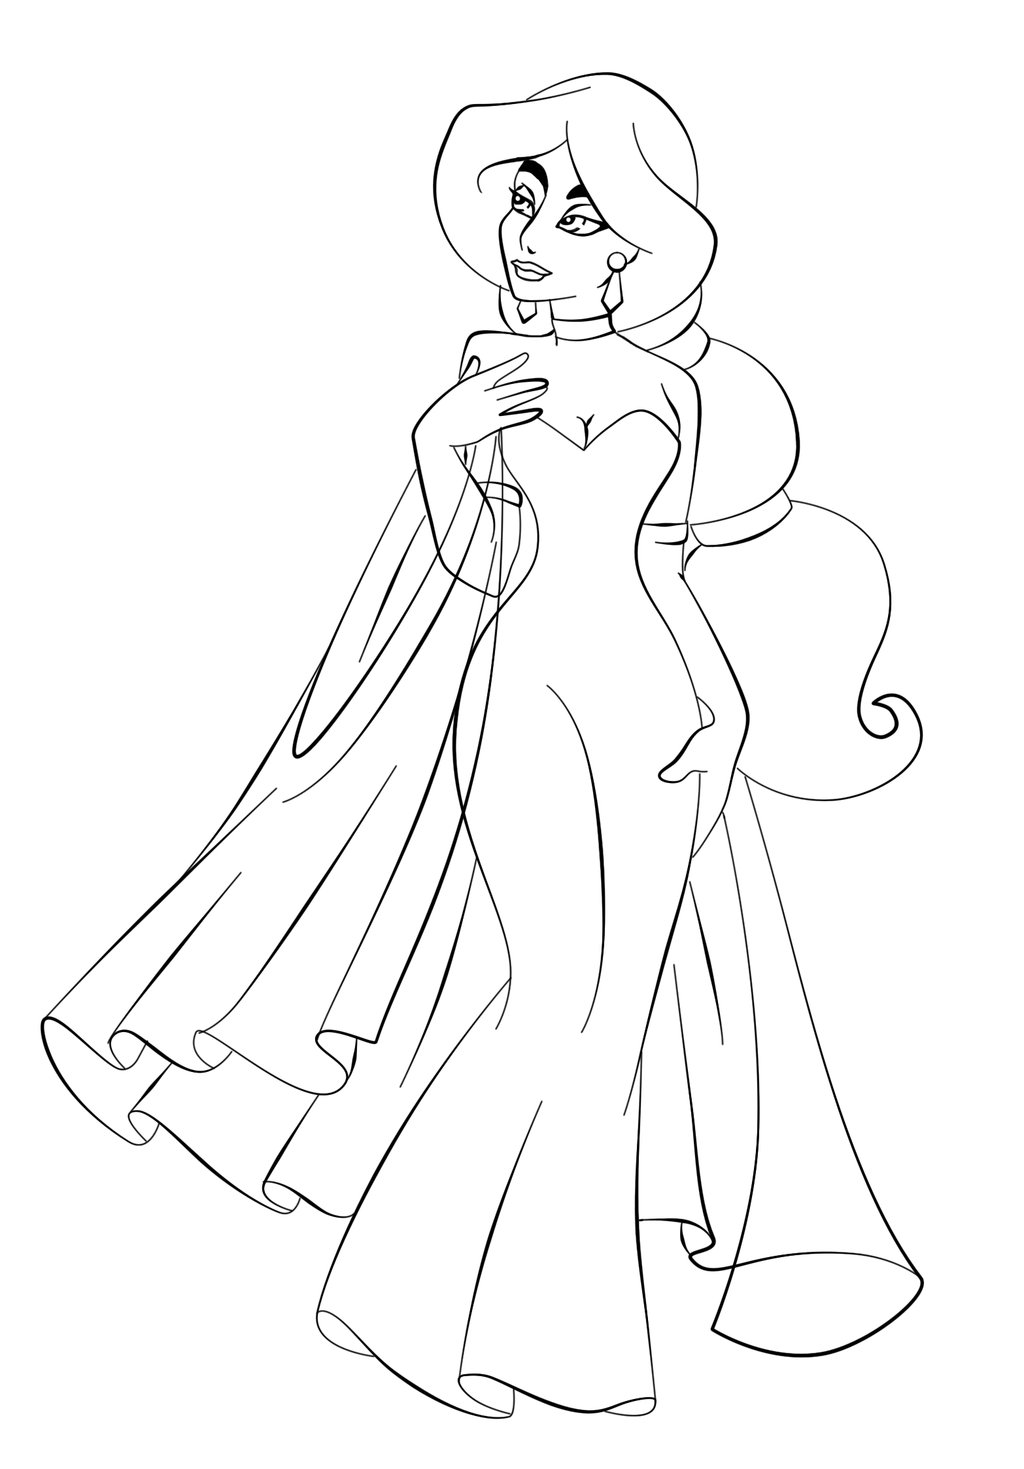 jasmine coloring sheets jasmine coloring pages download and print for free coloring sheets jasmine